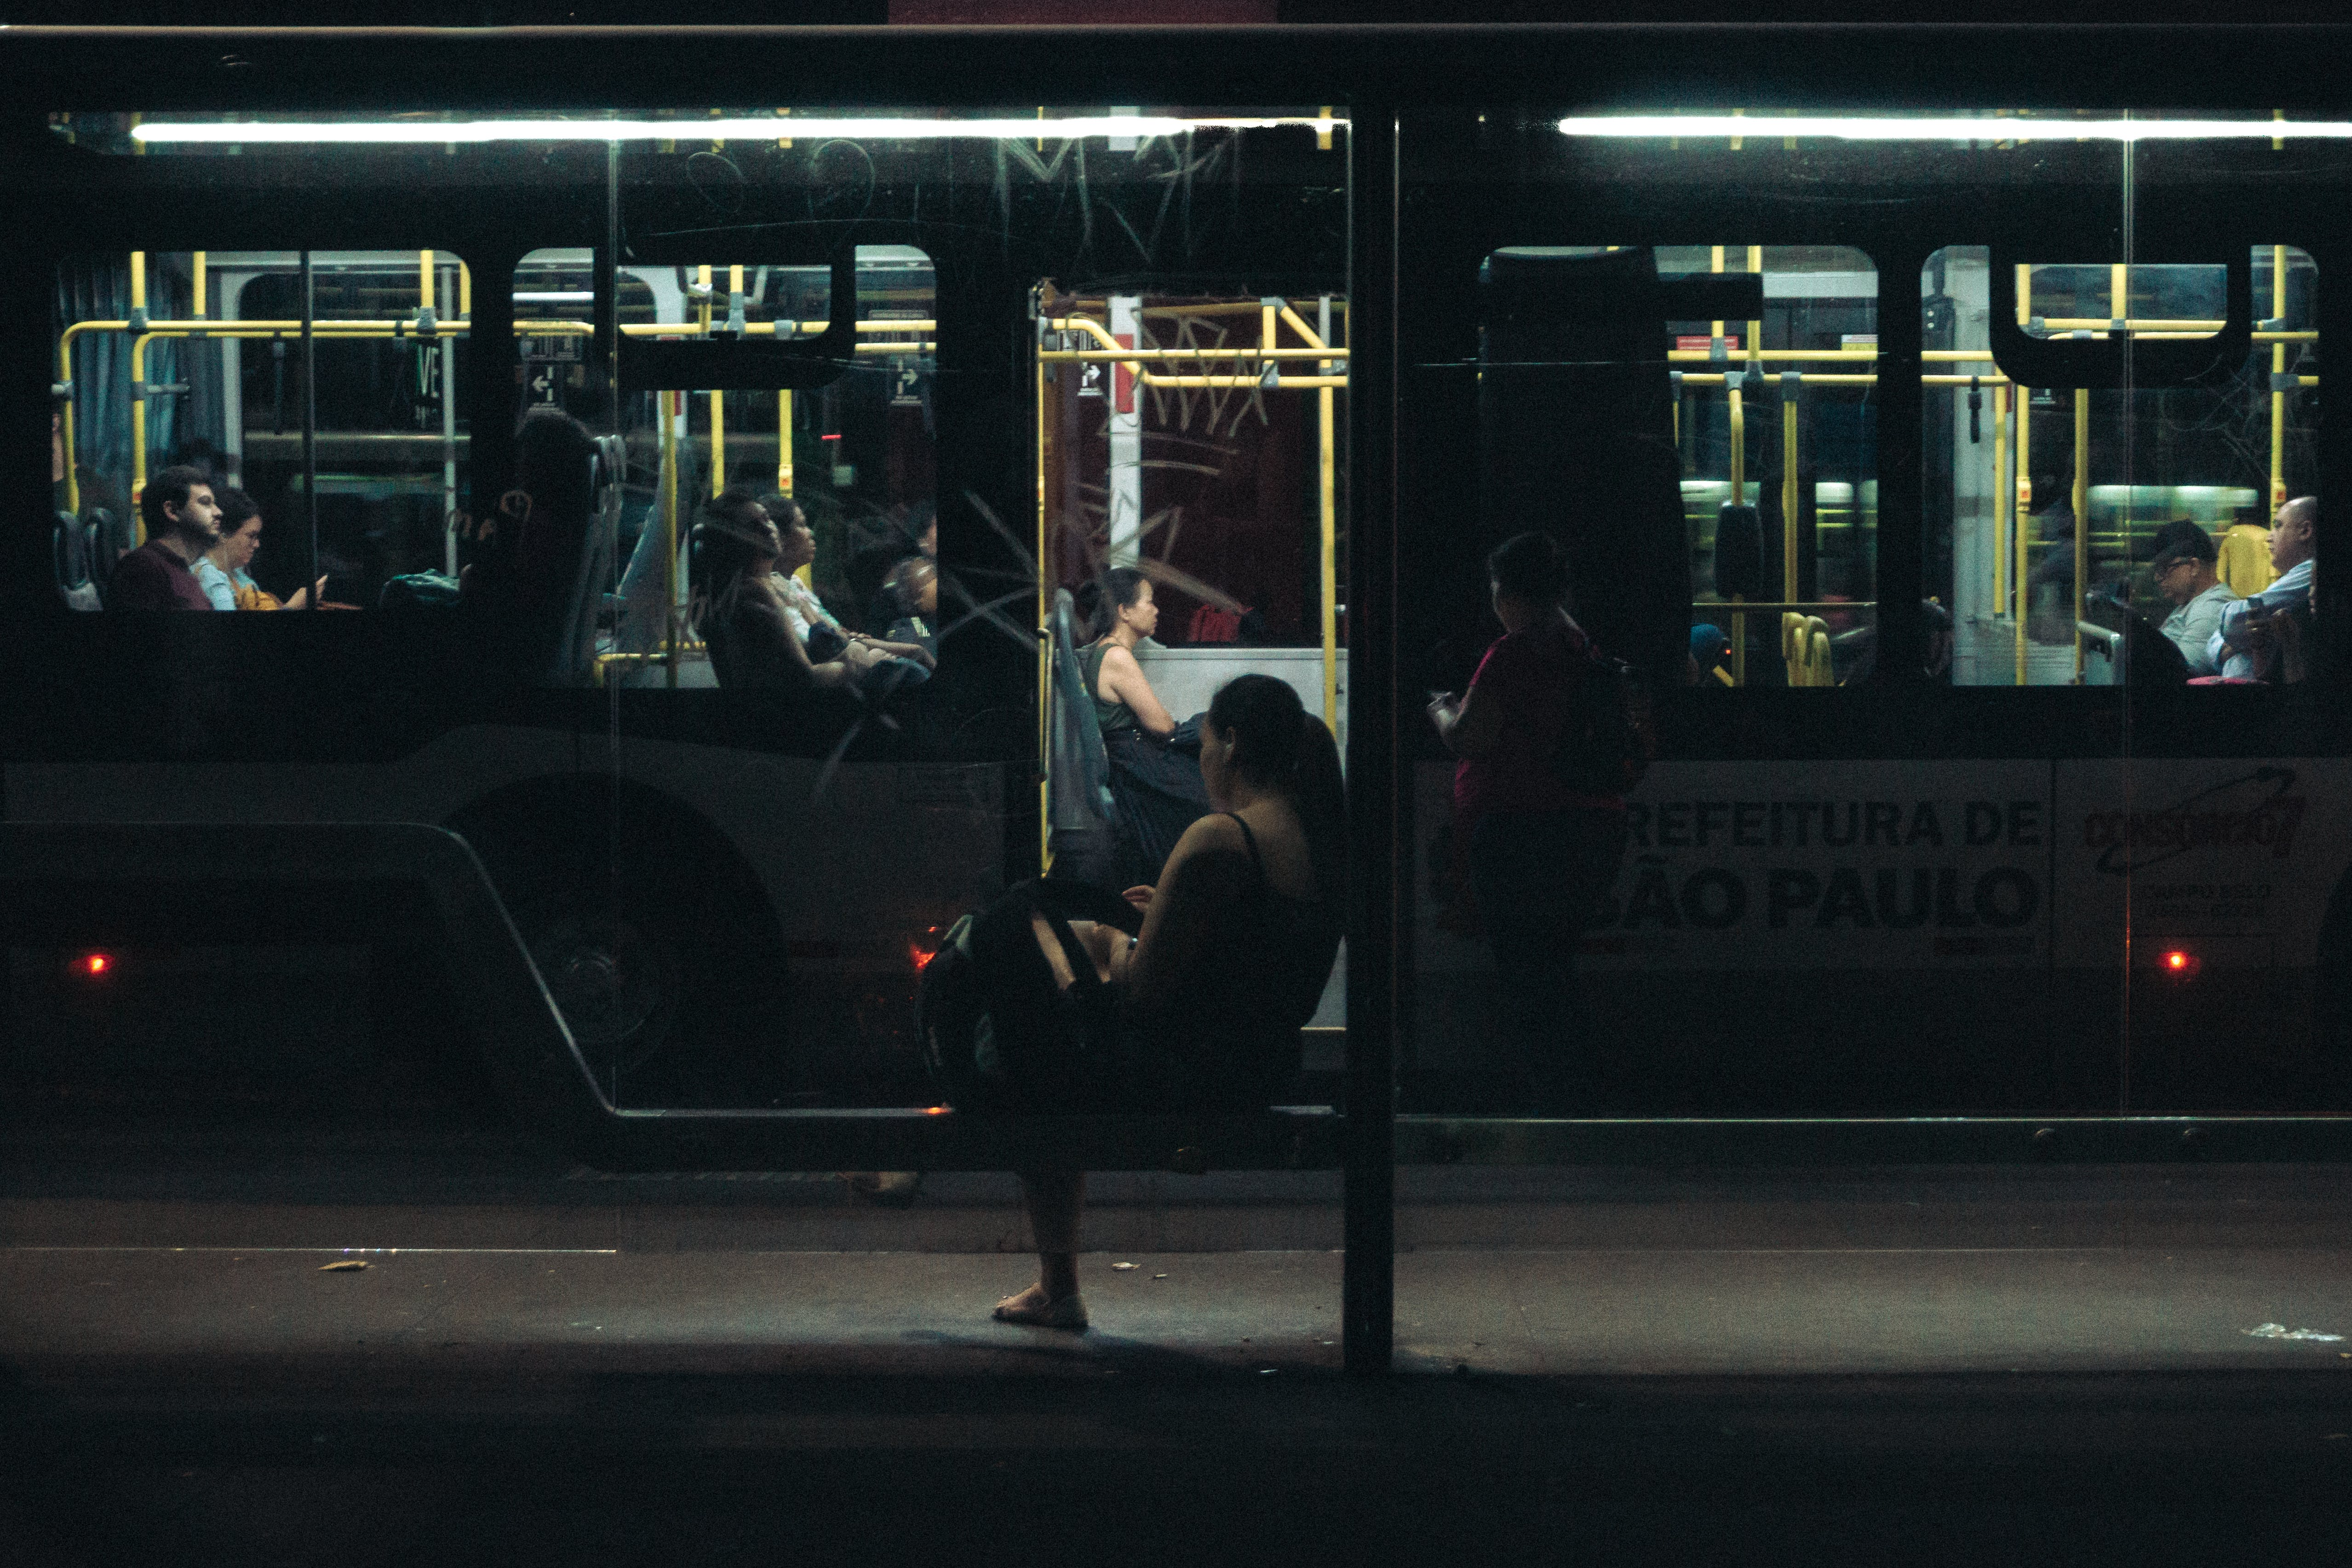 Woman Sitting on Bench during Nighttime